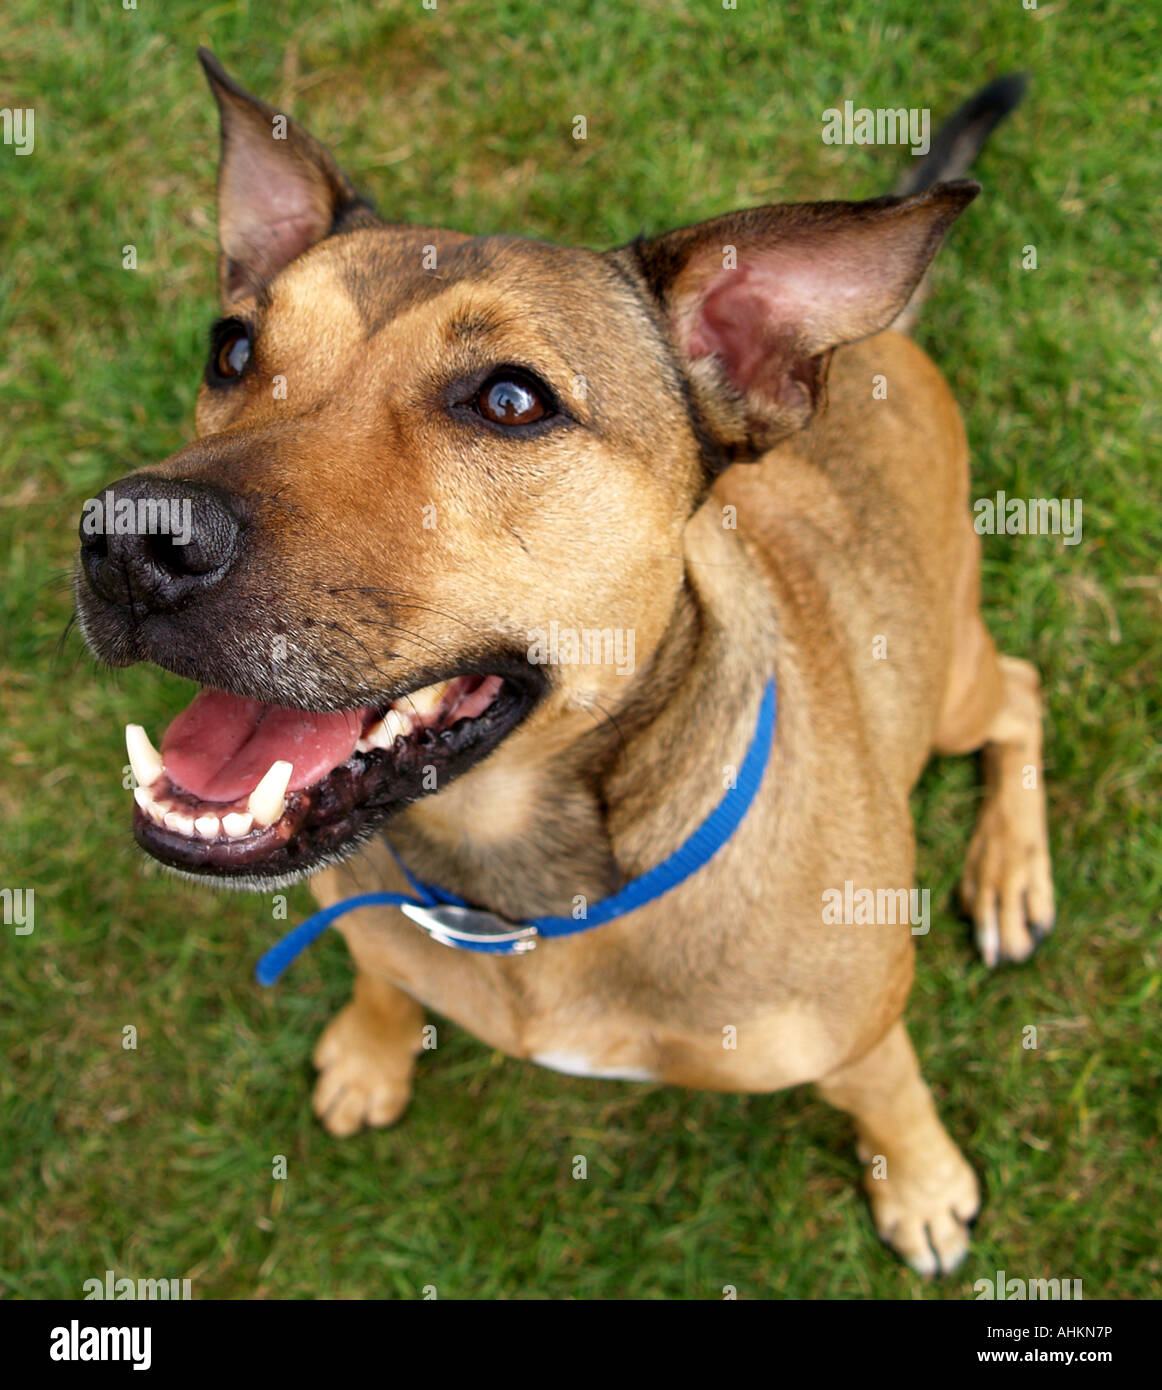 An excited and alert male brown dog smiles up at the camera - Stock Image